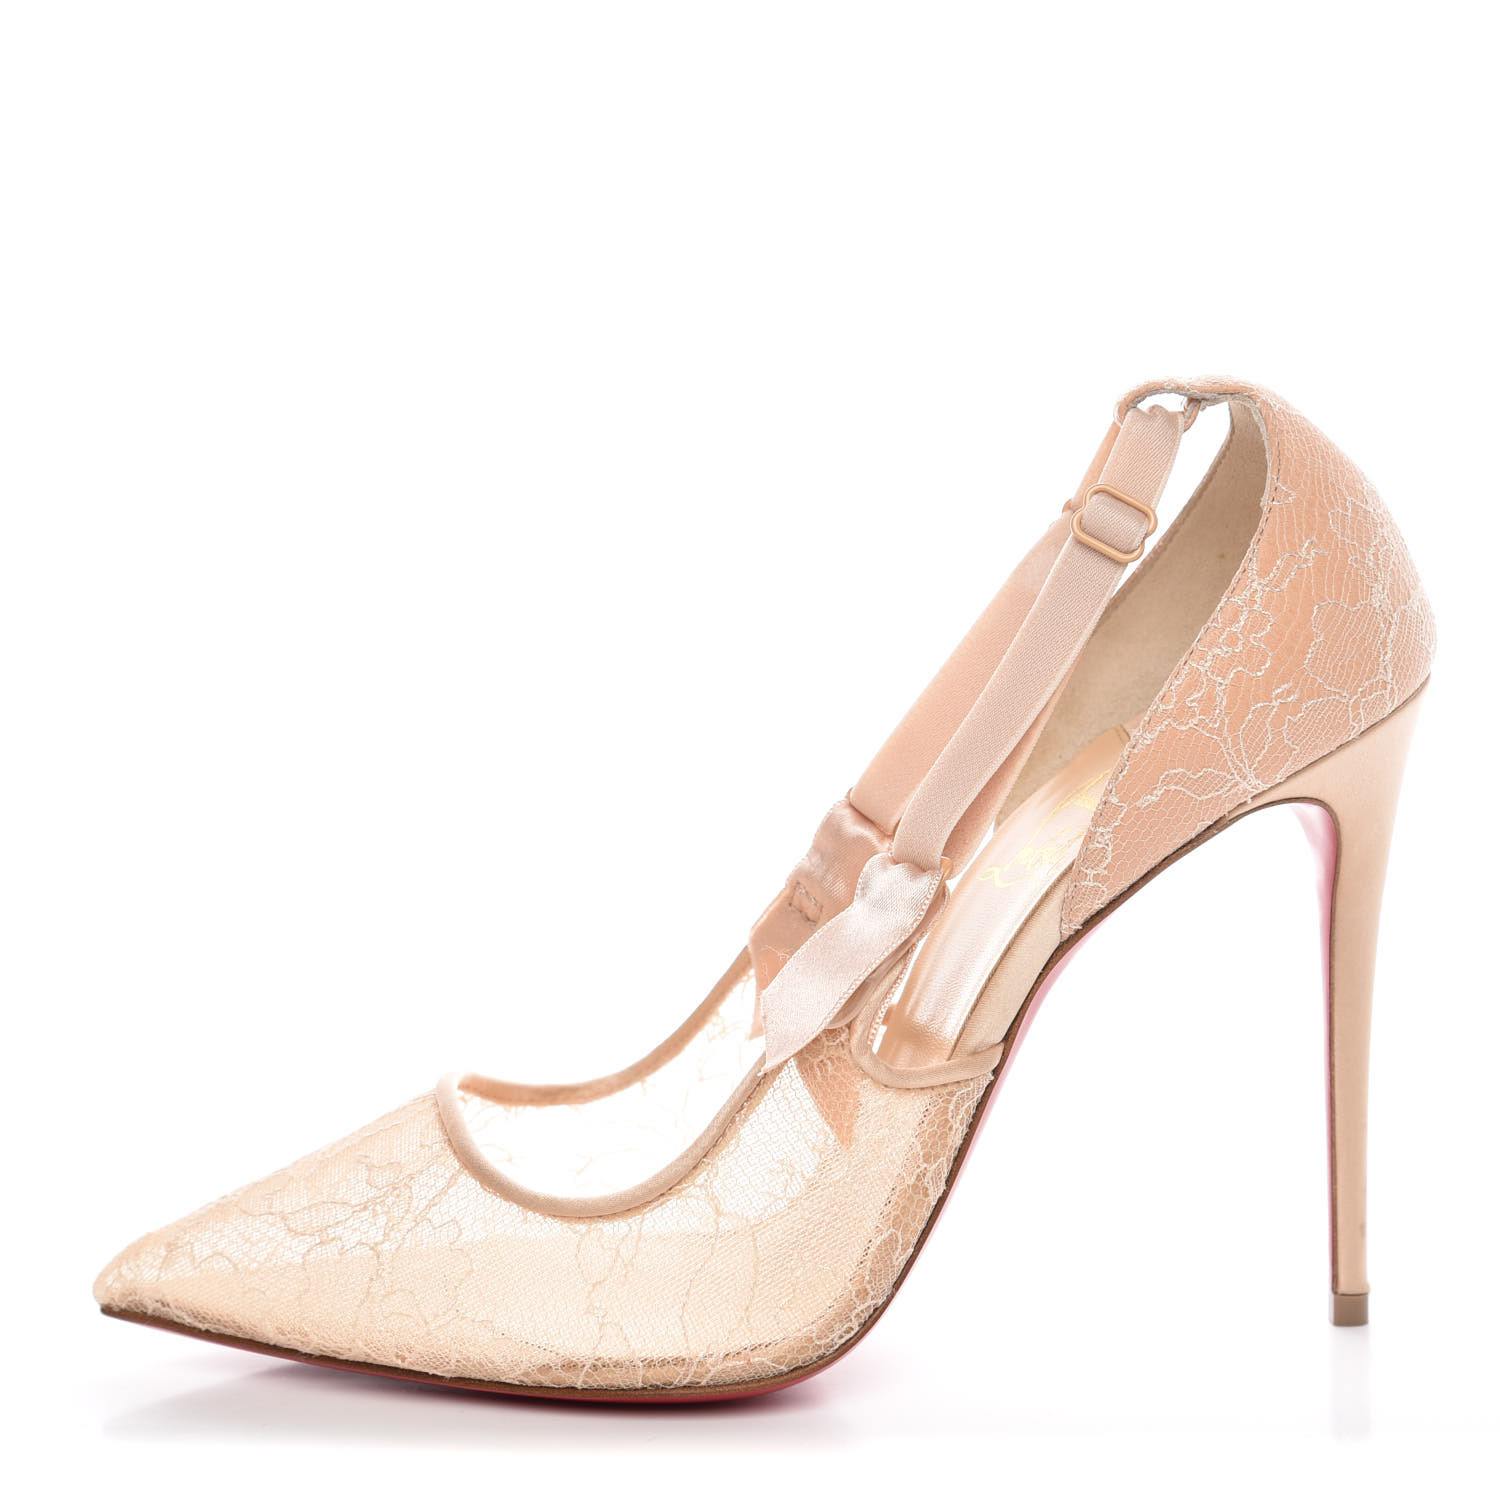 huge selection of dfbe9 959c4 CHRISTIAN LOUBOUTIN Satin Chantilly Lace Hot Jeanbi 100 Pumps 38 Nude